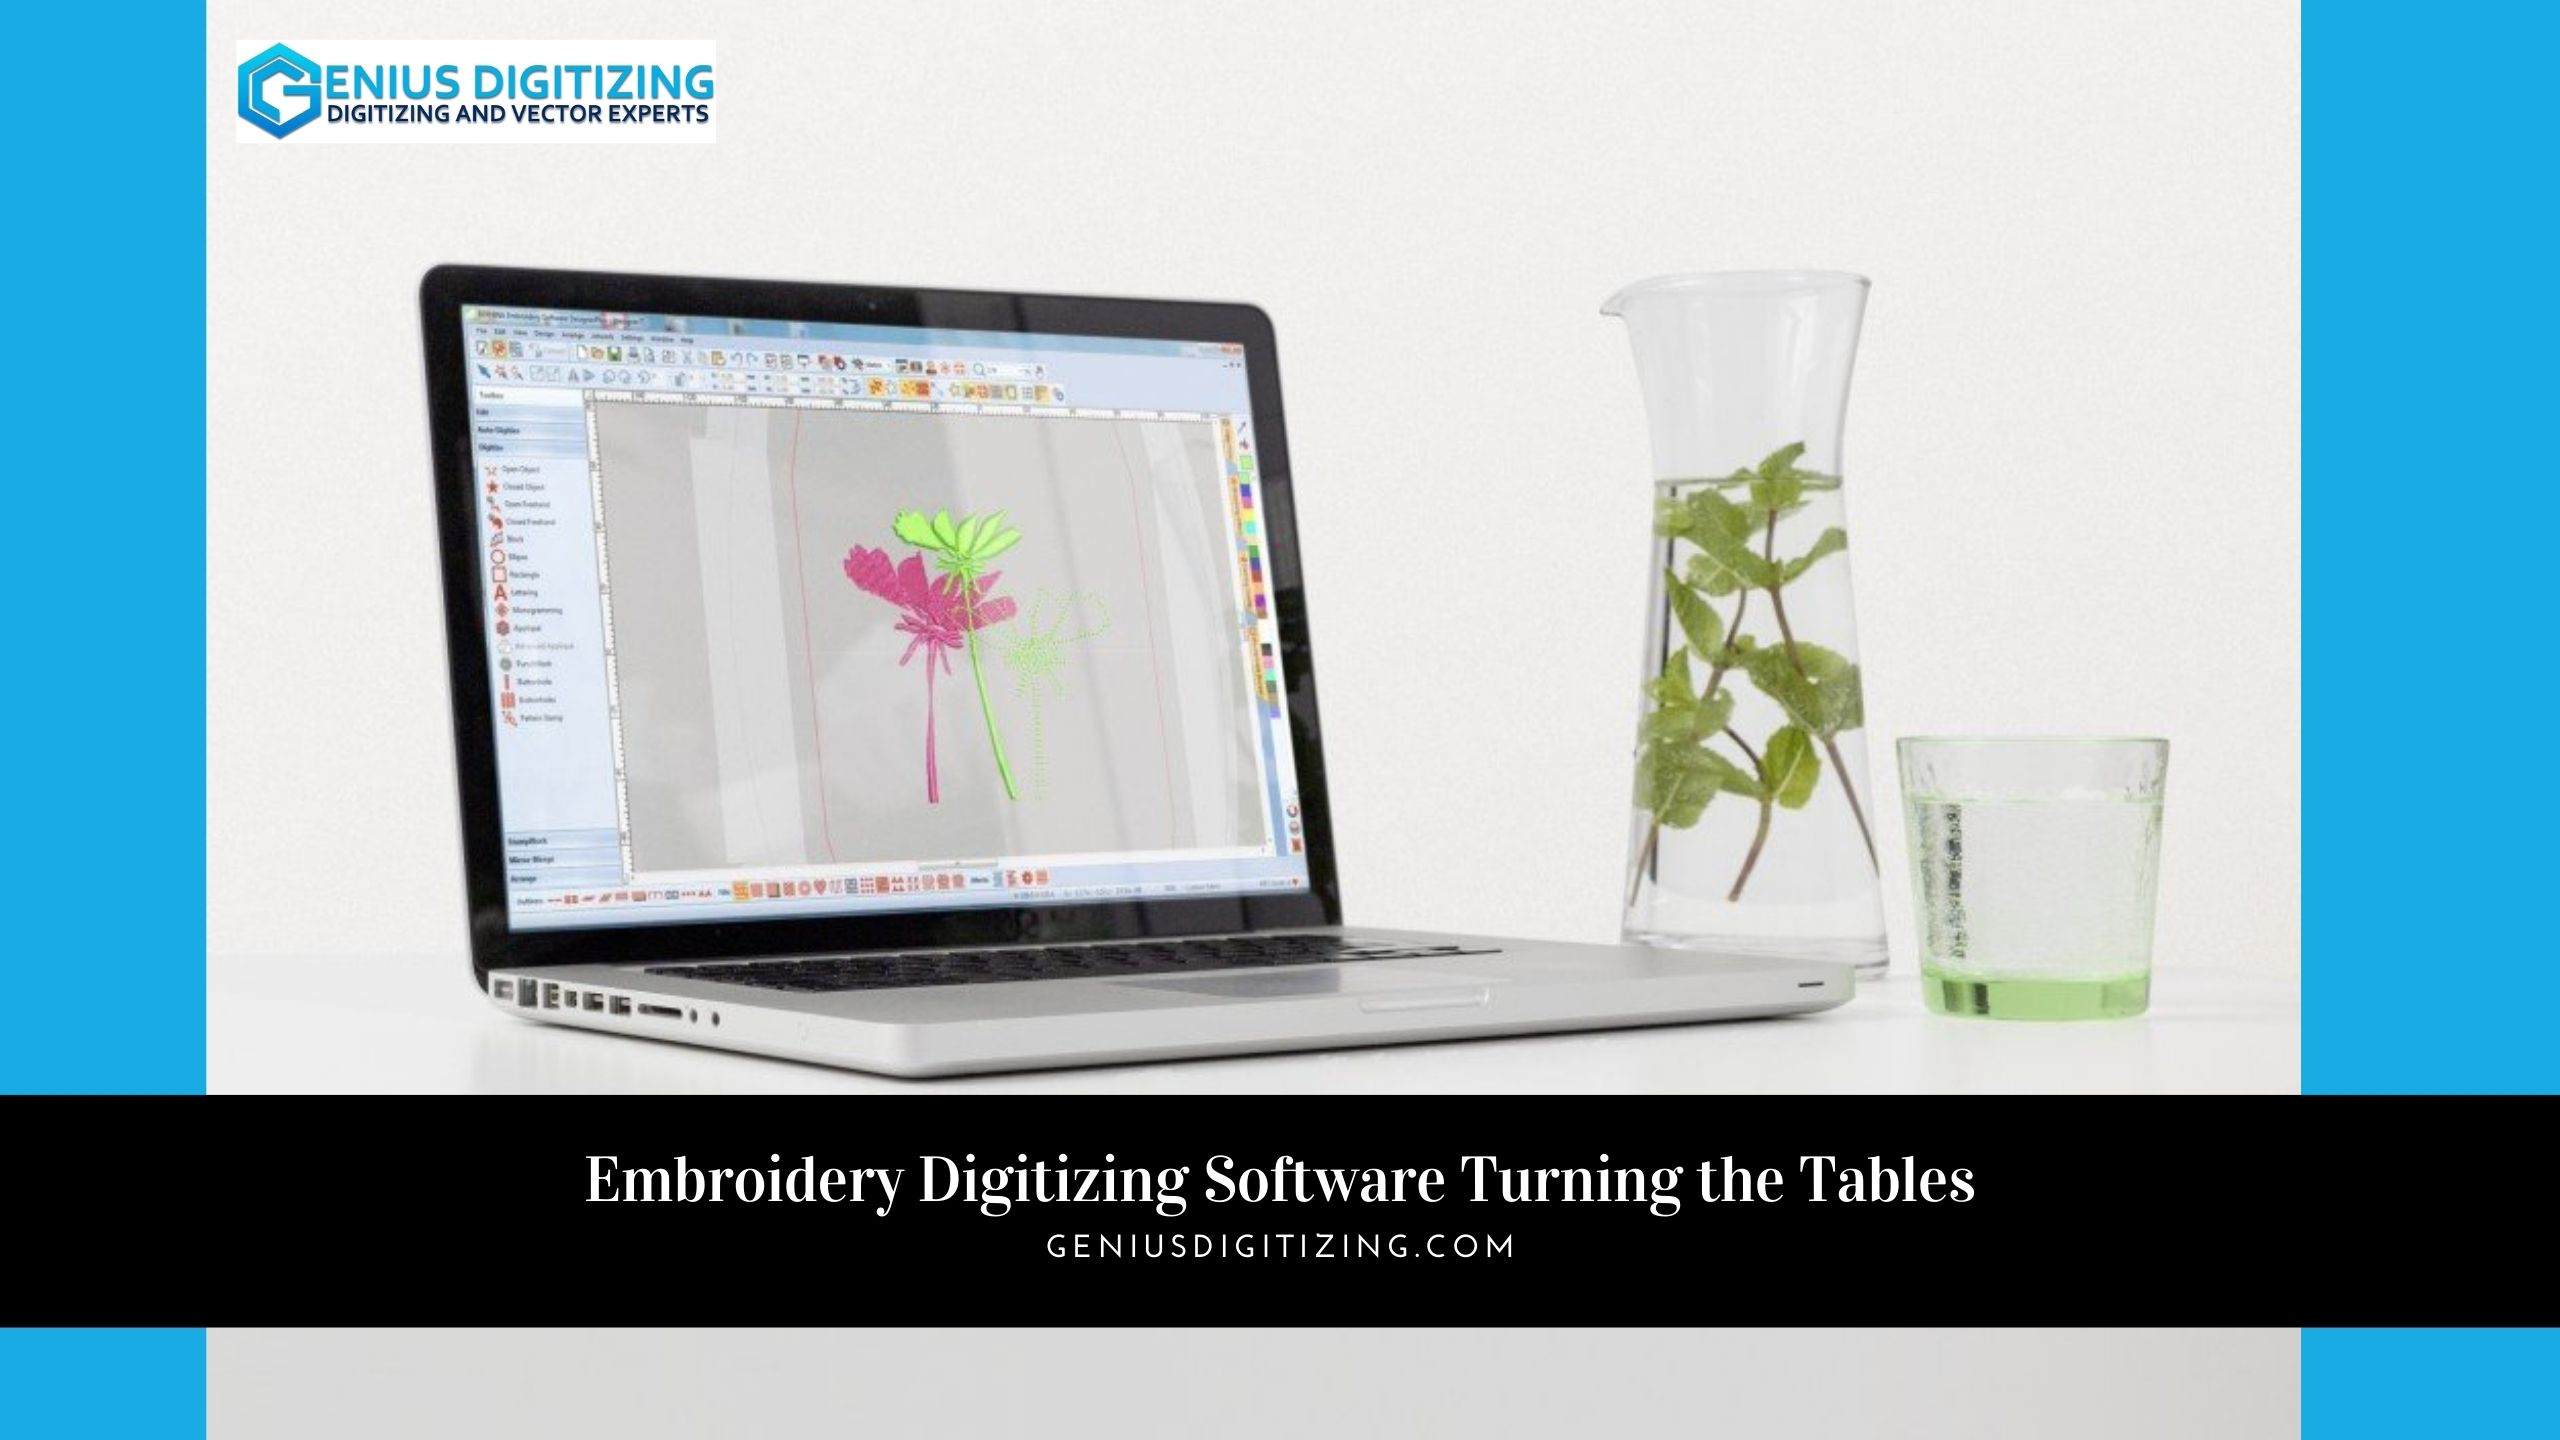 <div> <p> Embroidery Digitizing Software Turning the Tables</p> </div> <p> </p>